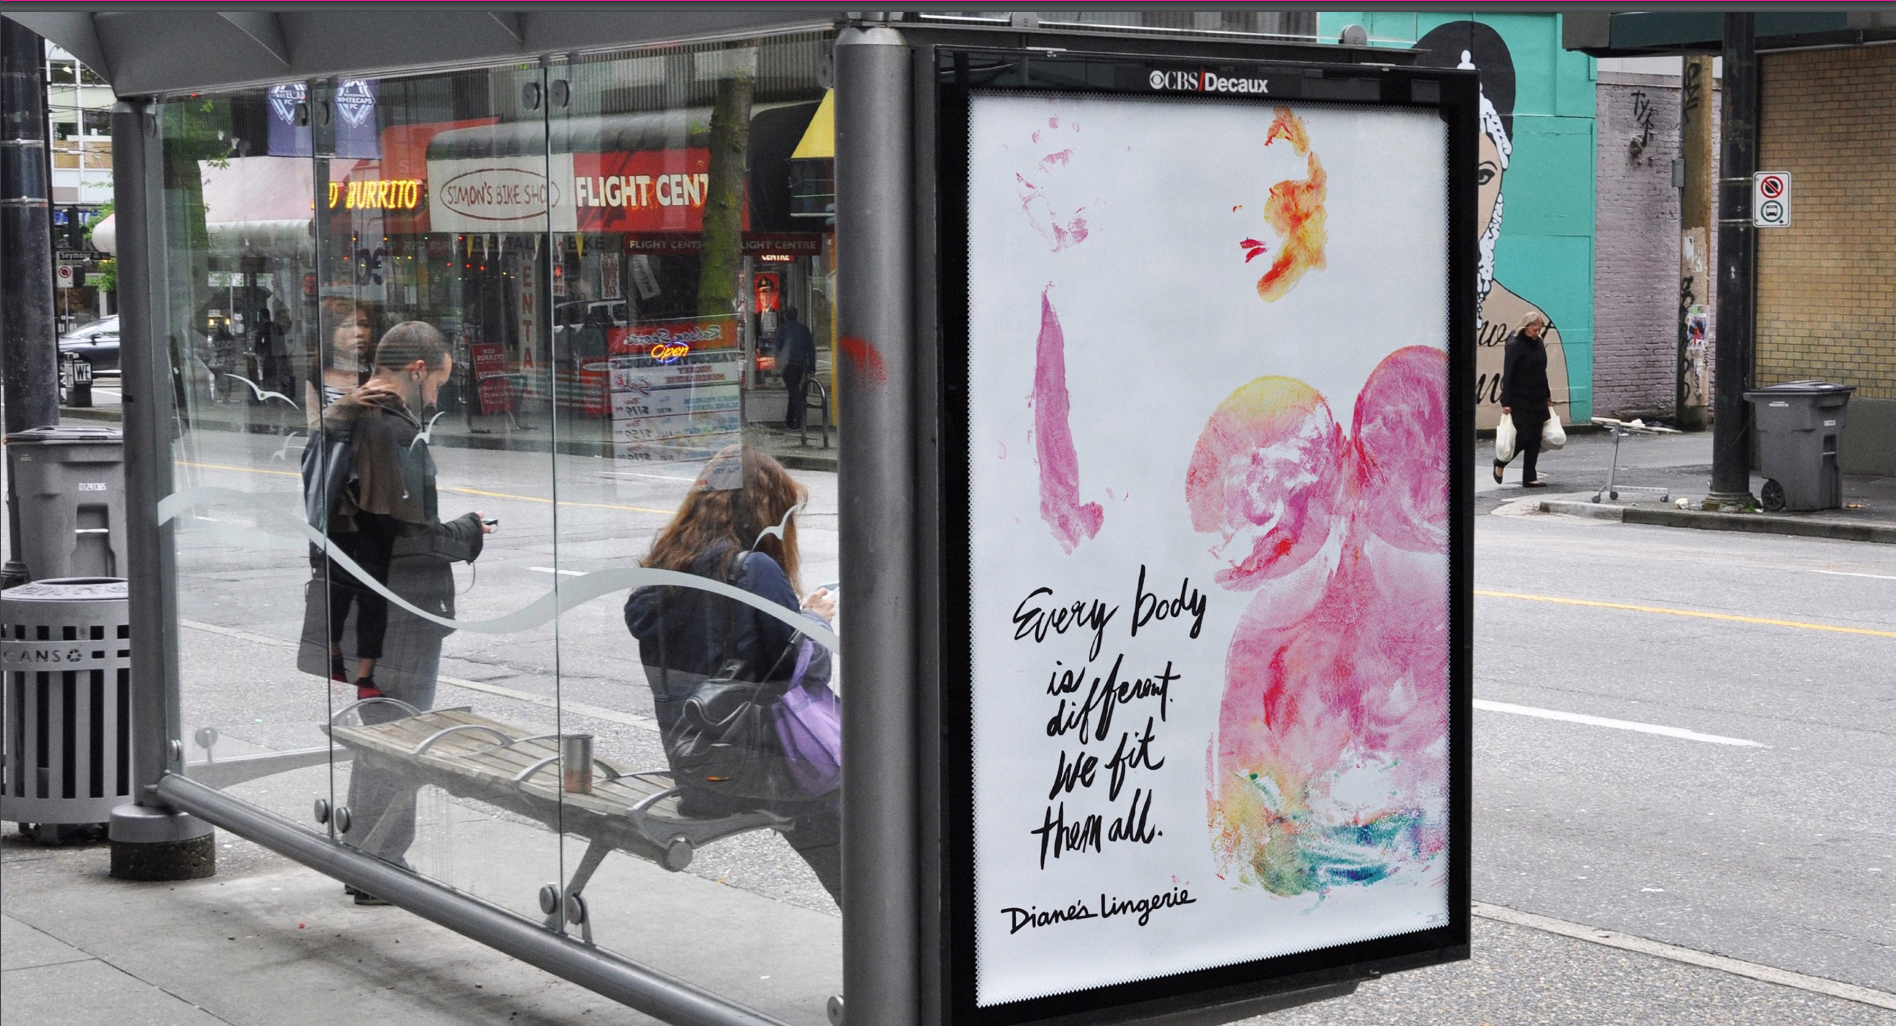 For Diane's Lingerie, 123w created the body-print campaign using body paint to turn participants' bodies into works of art. The art was used in print, transit shelter and instore ads as well as CRM and shopping bags. It also spawned a gallery show called 'Art of a Woman'.